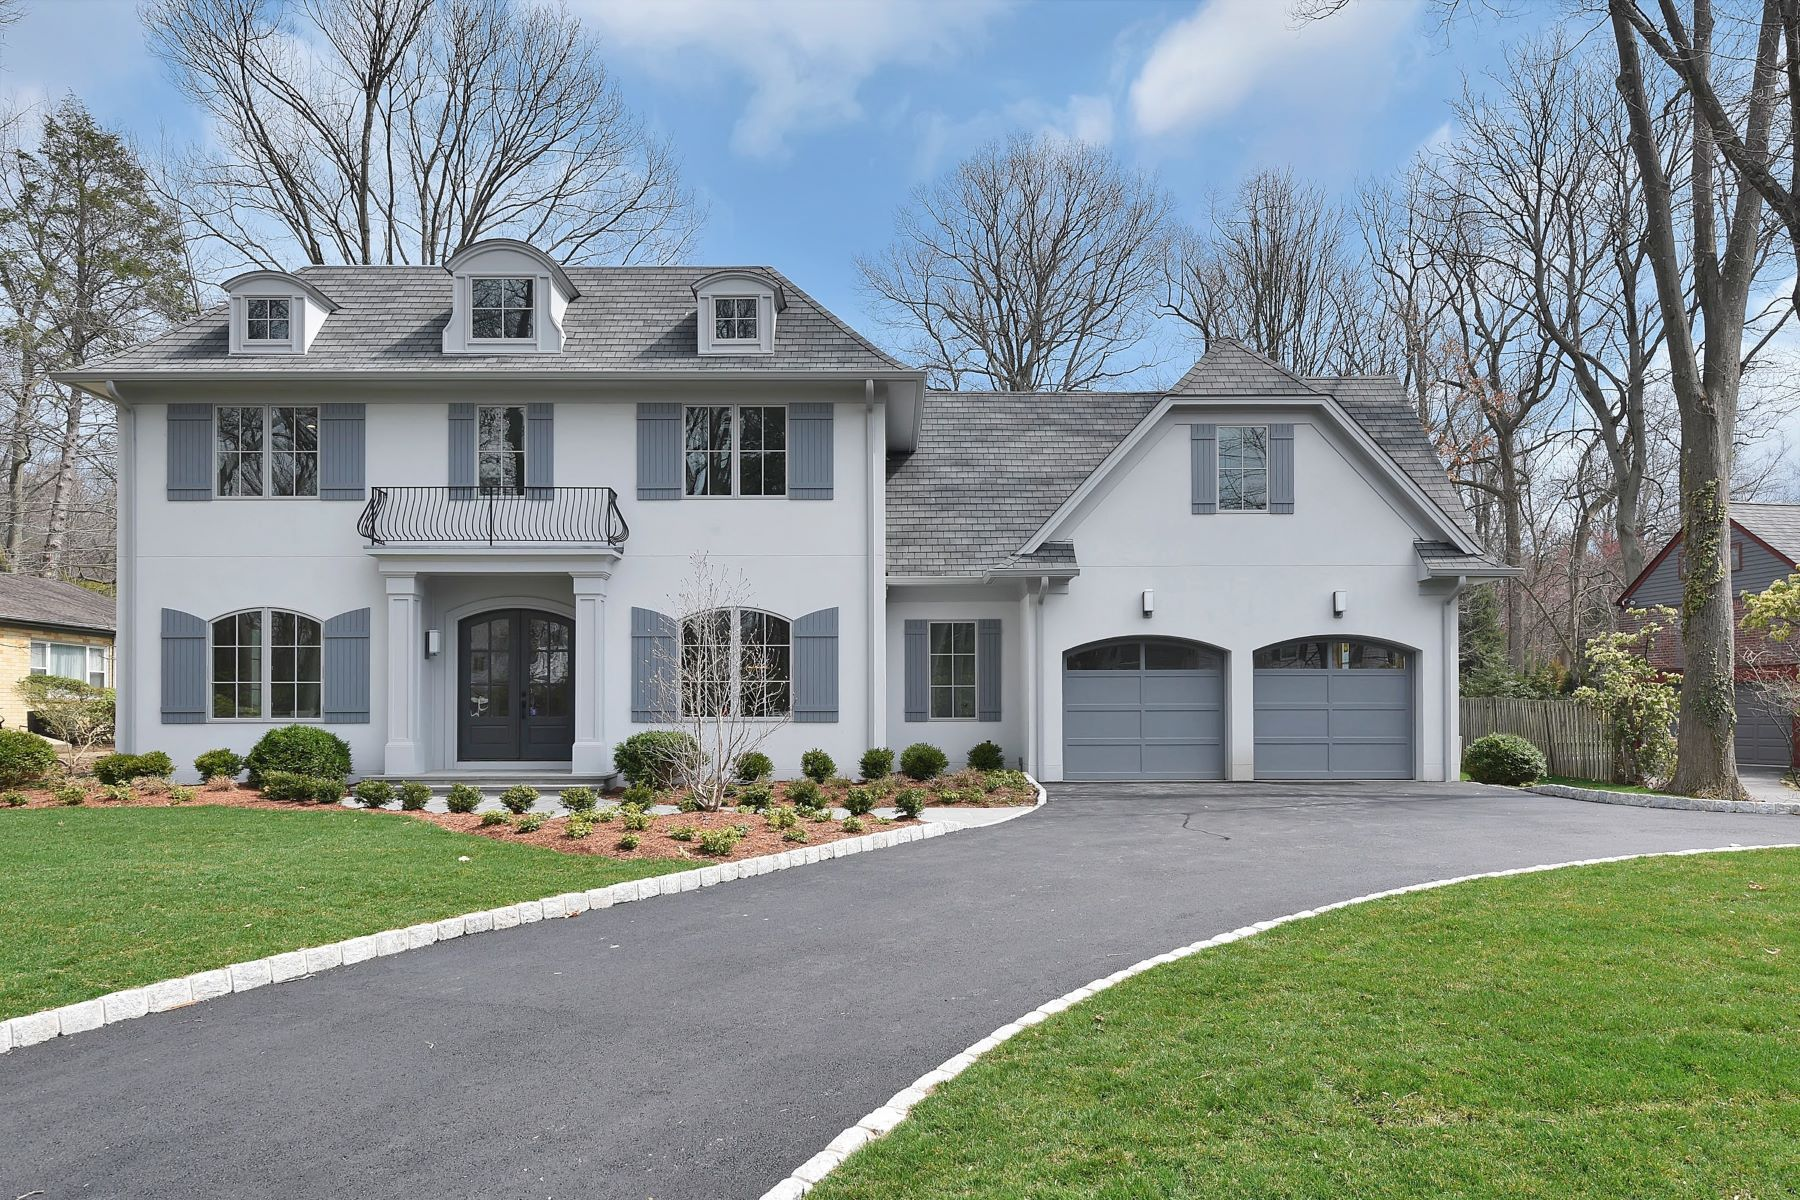 Single Family Home for Sale at Fabulous New Construction 34 Brook Rd., Tenafly, New Jersey 07670 United States